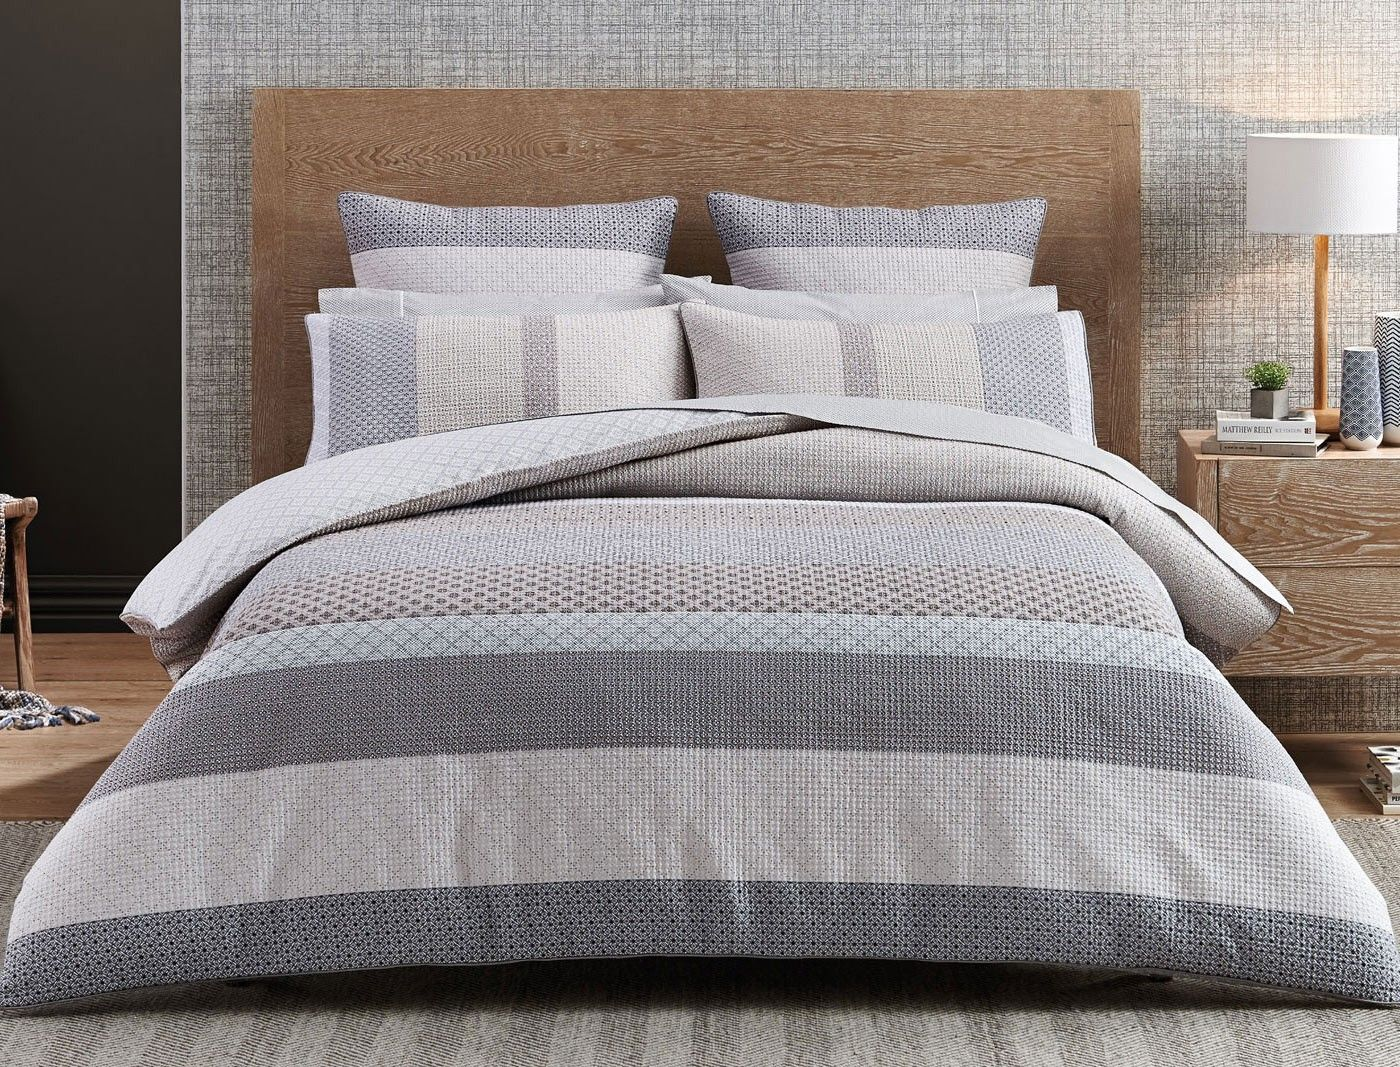 WINSLOW Quilt cover set | Bed Bath & Table | Home Interior Inspo ... : bed and bath quilts - Adamdwight.com